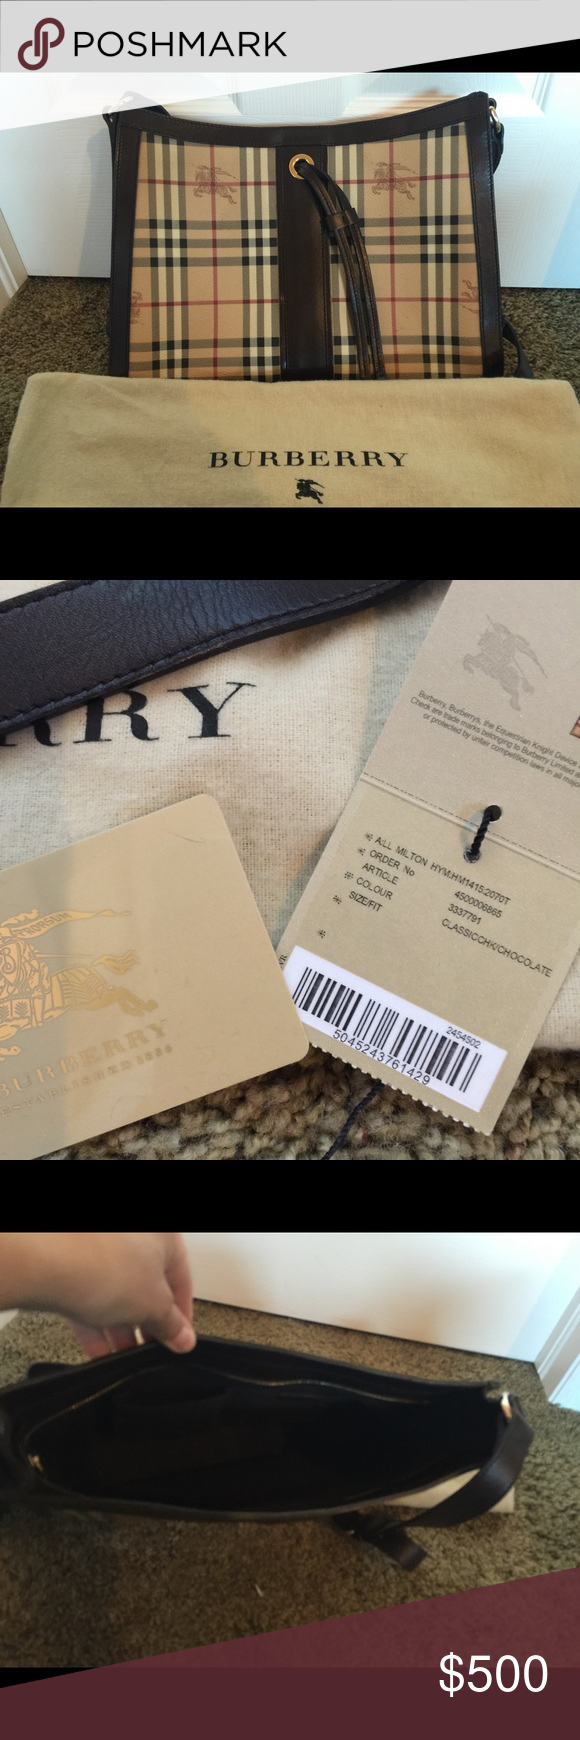 Burberry Haymarket Milton Bag Burberry Milton bag, with long strap that can be worn Crossbody.  It's only been used a few times and is in perfect condition.  It comes with the dustbag and original tag. Burberry Bags Crossbody Bags